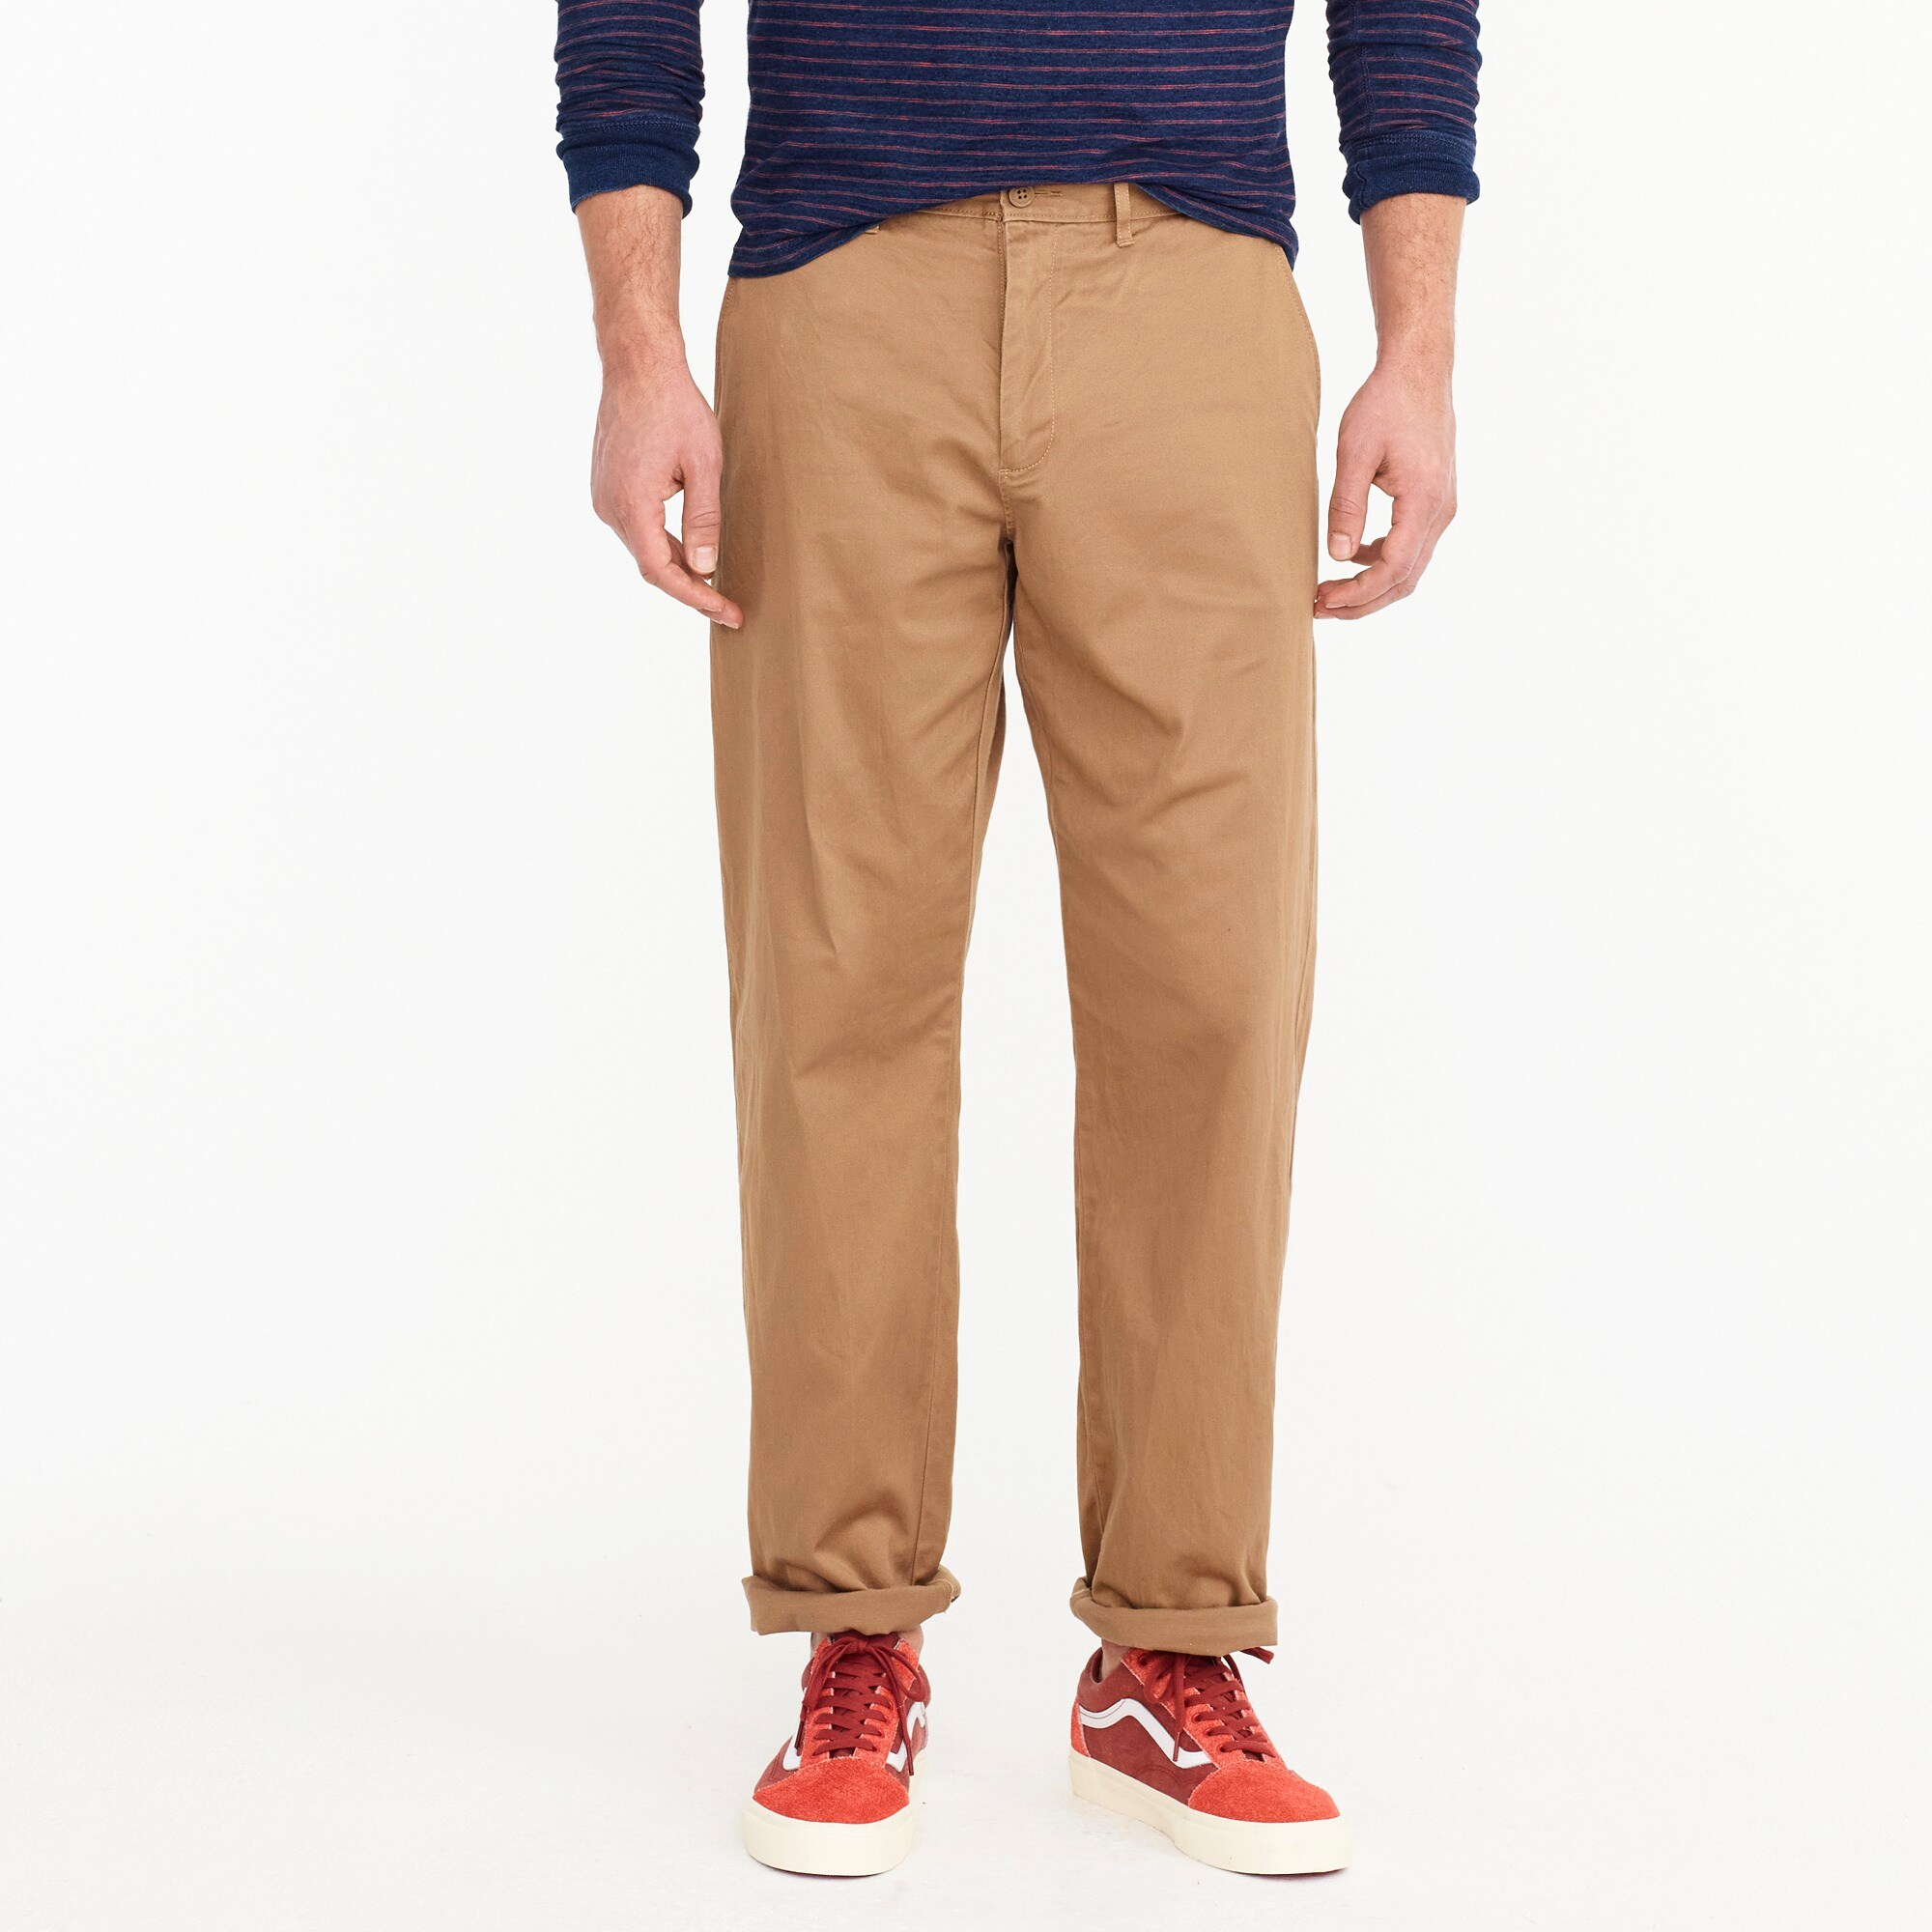 Image 1 for 1450 Relaxed-fit stretch chino